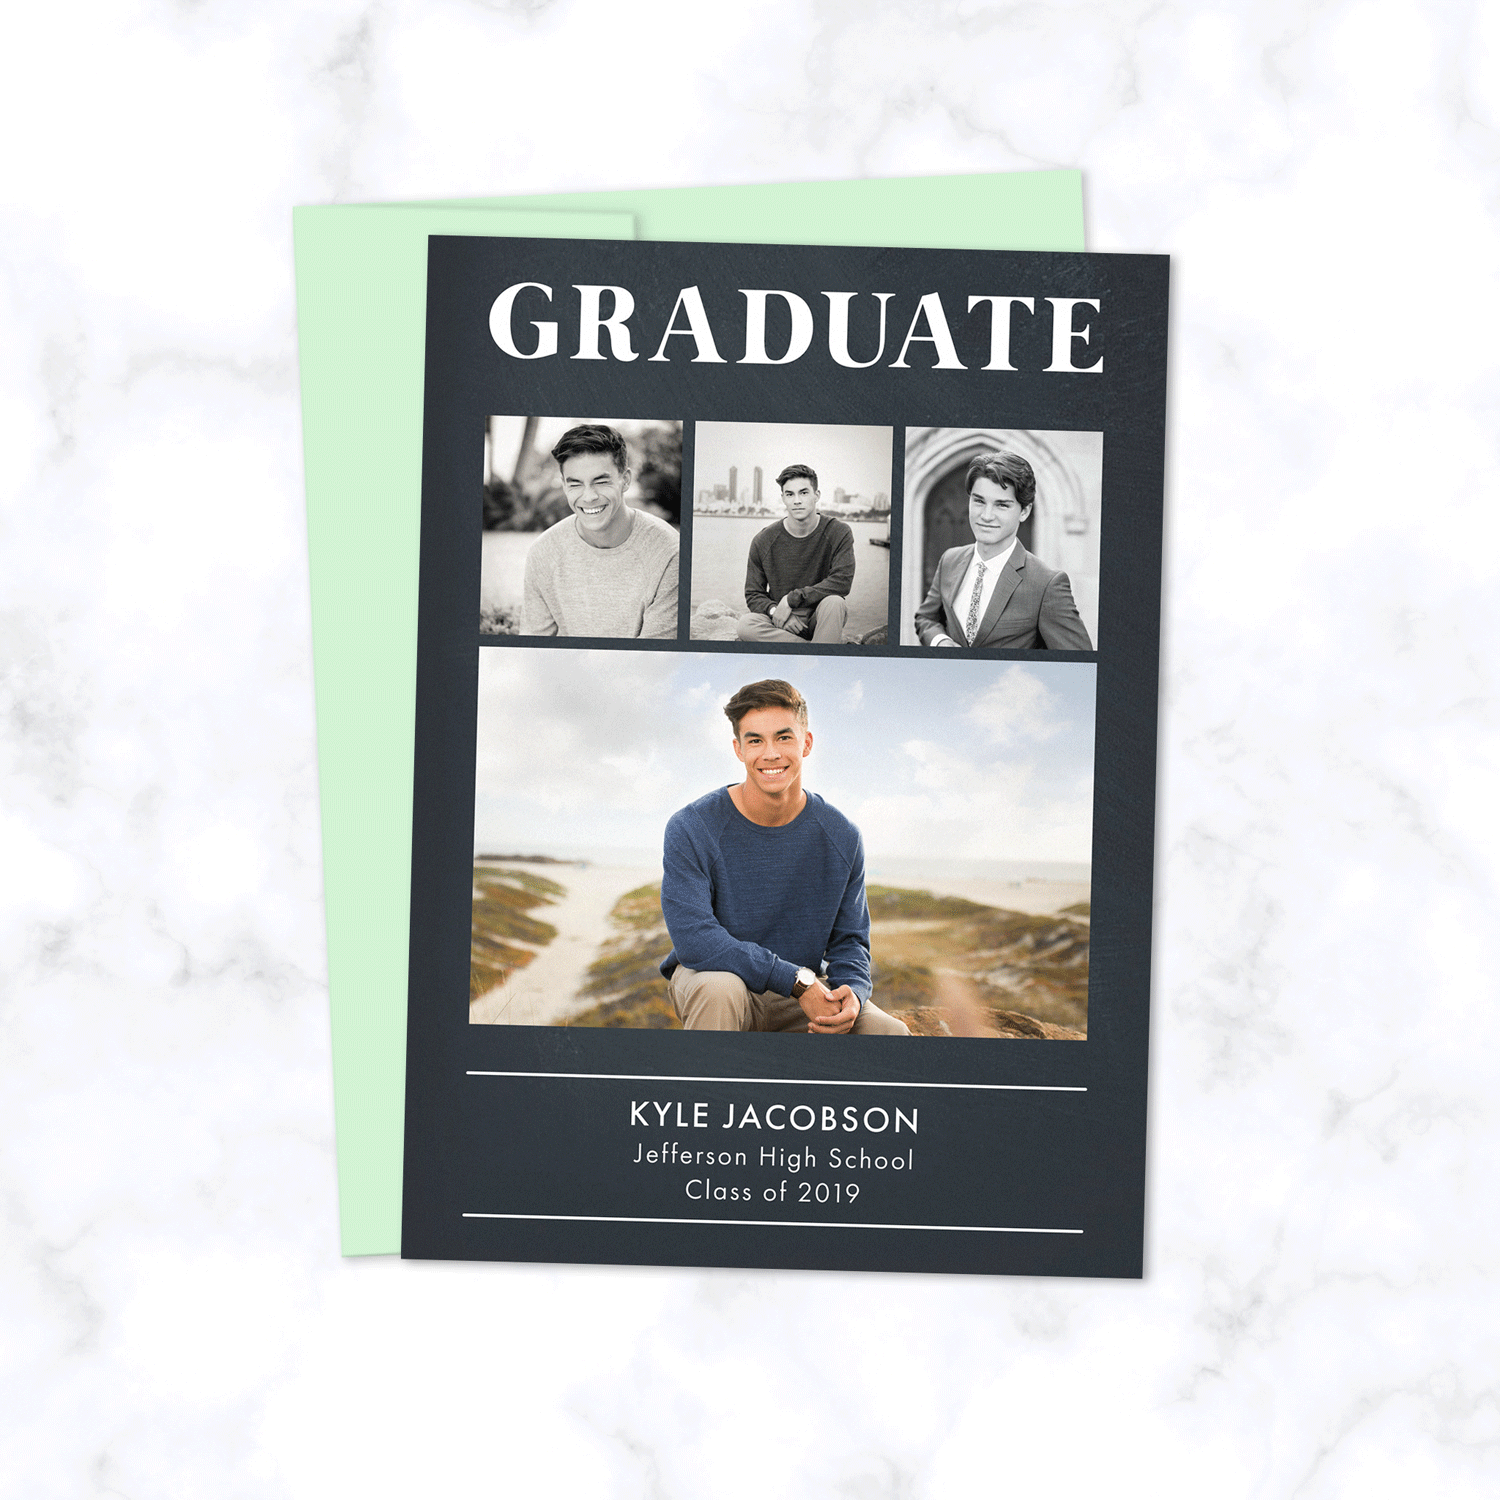 Classic Graduation Announcement Card with Four Photos and Modern Simple Typography with Dark Chalkboard Gray Background - Envelopes Included - Shown with Pistachio Green Envelope